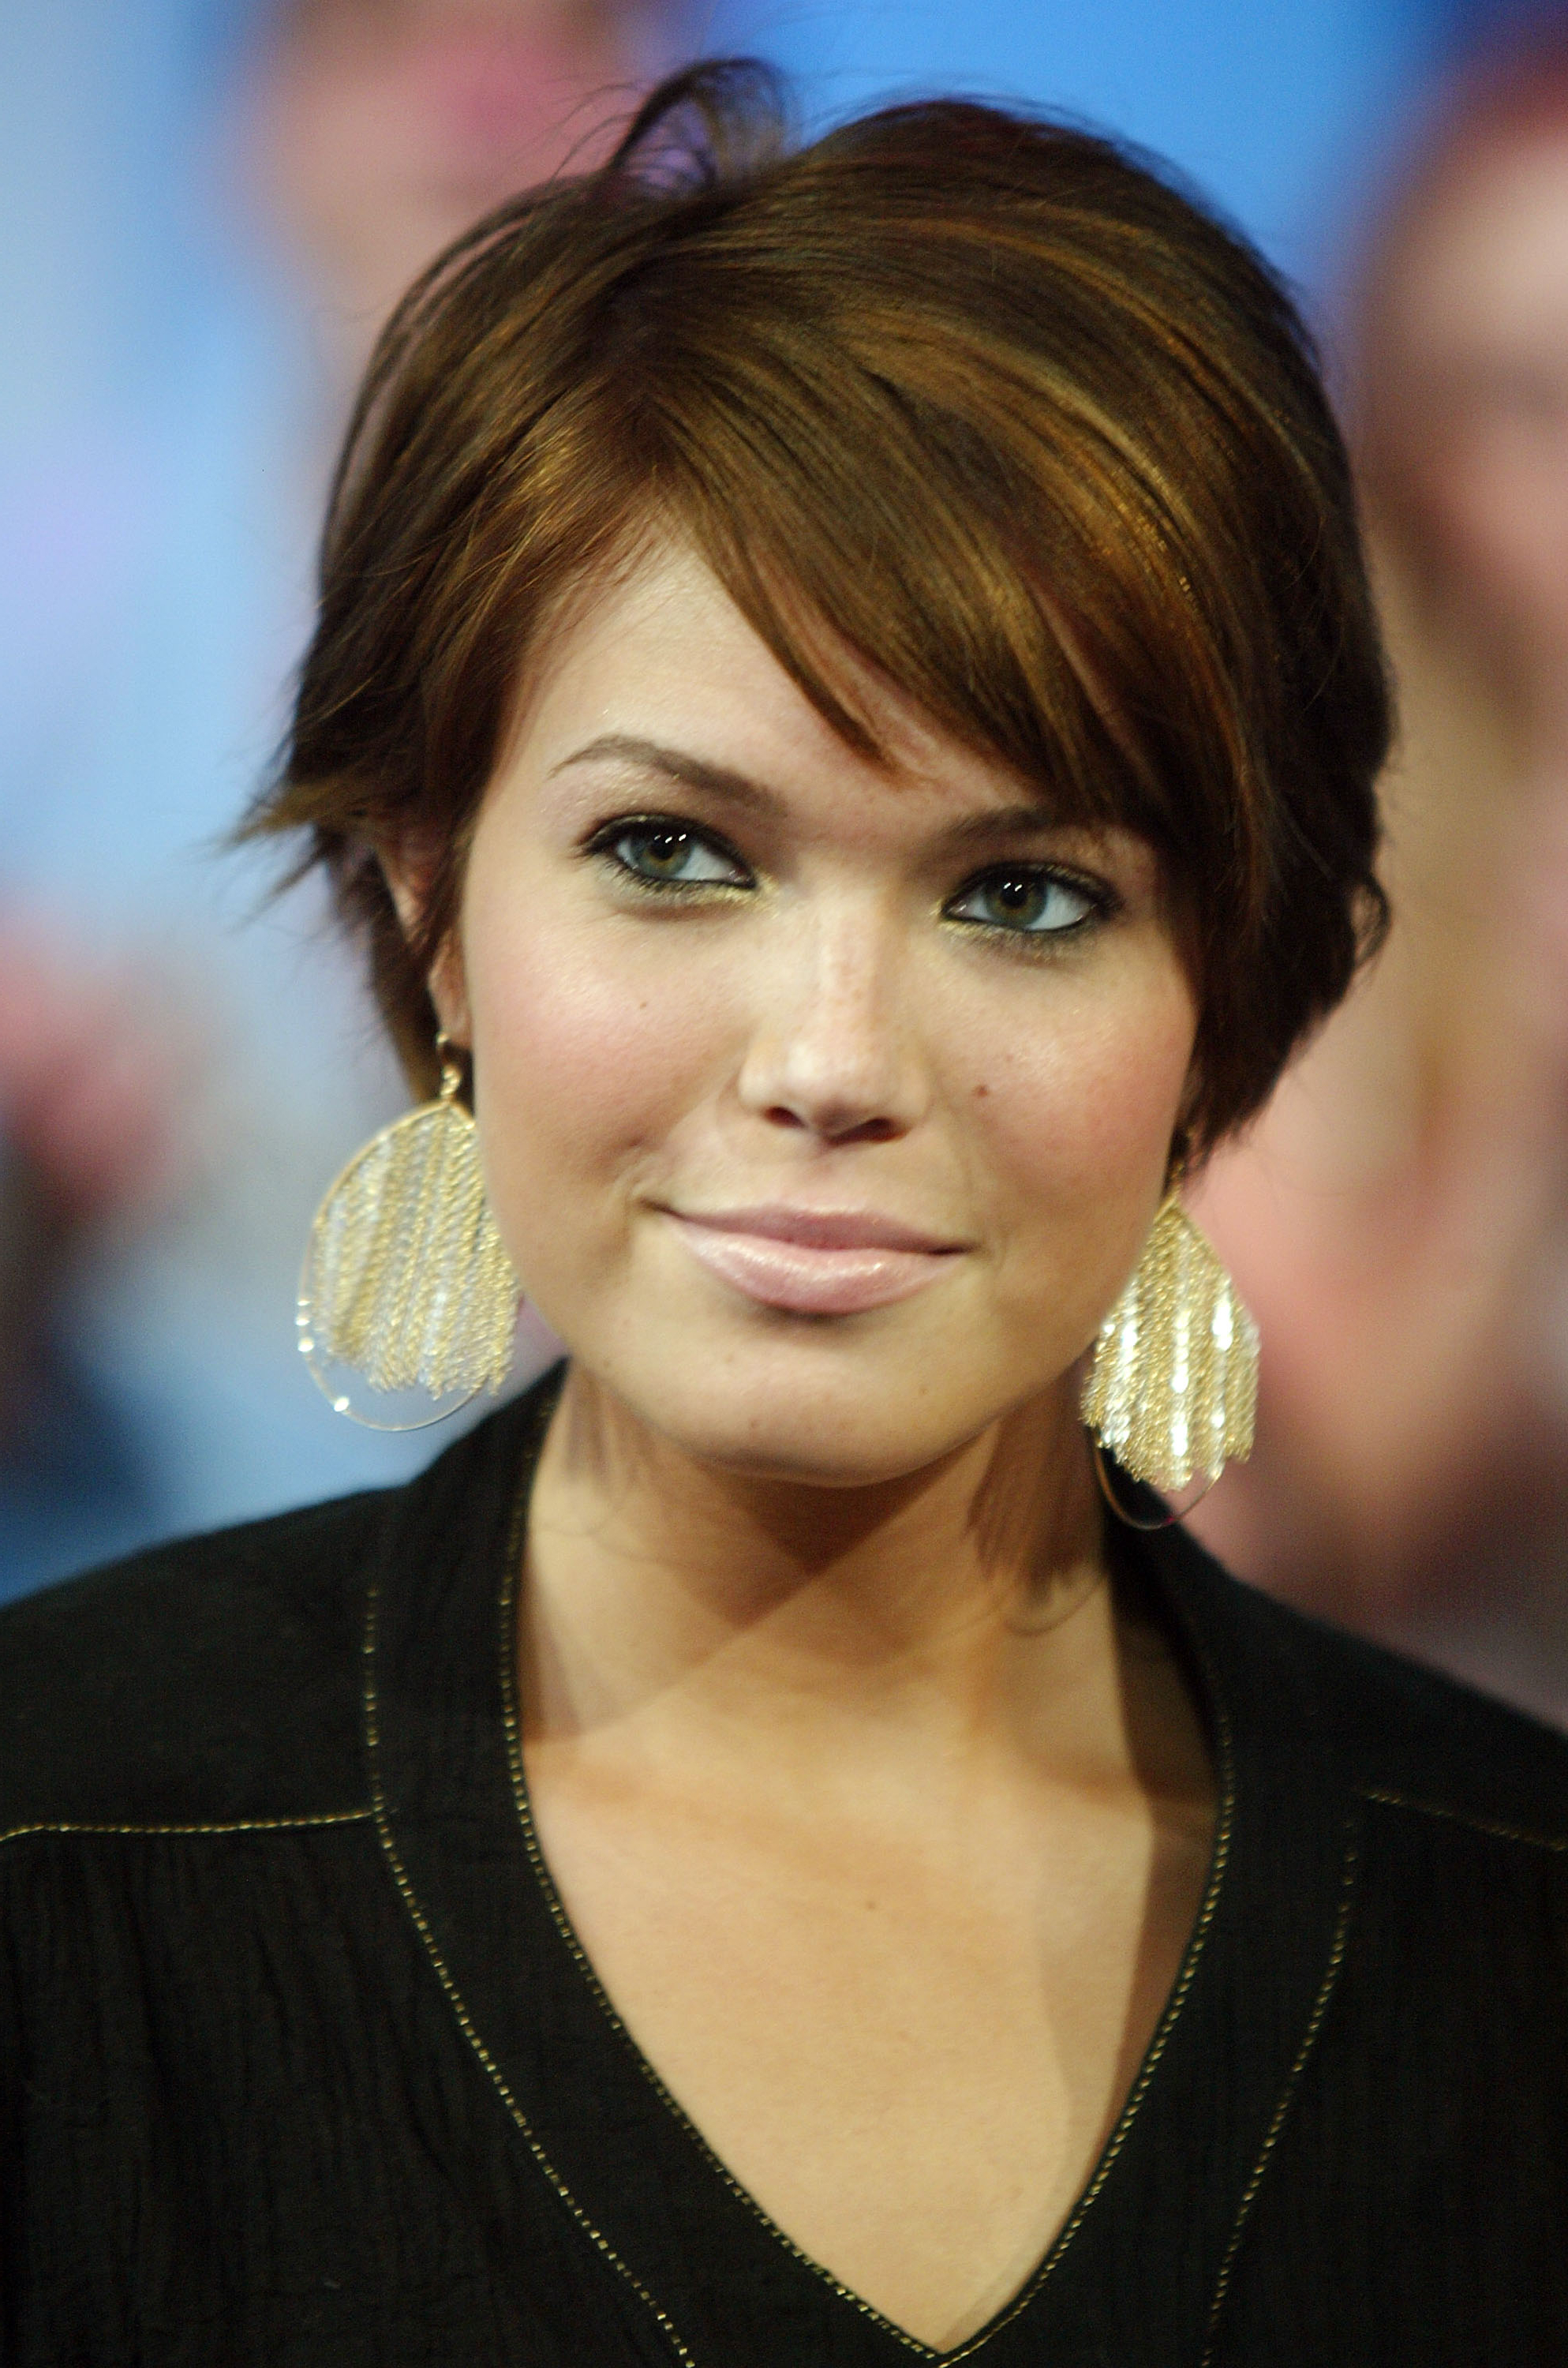 Short Haircuts For Round Faces Thin Hair – Hairstyle For Women & Man In Womens Short Haircuts For Round Faces (View 16 of 25)